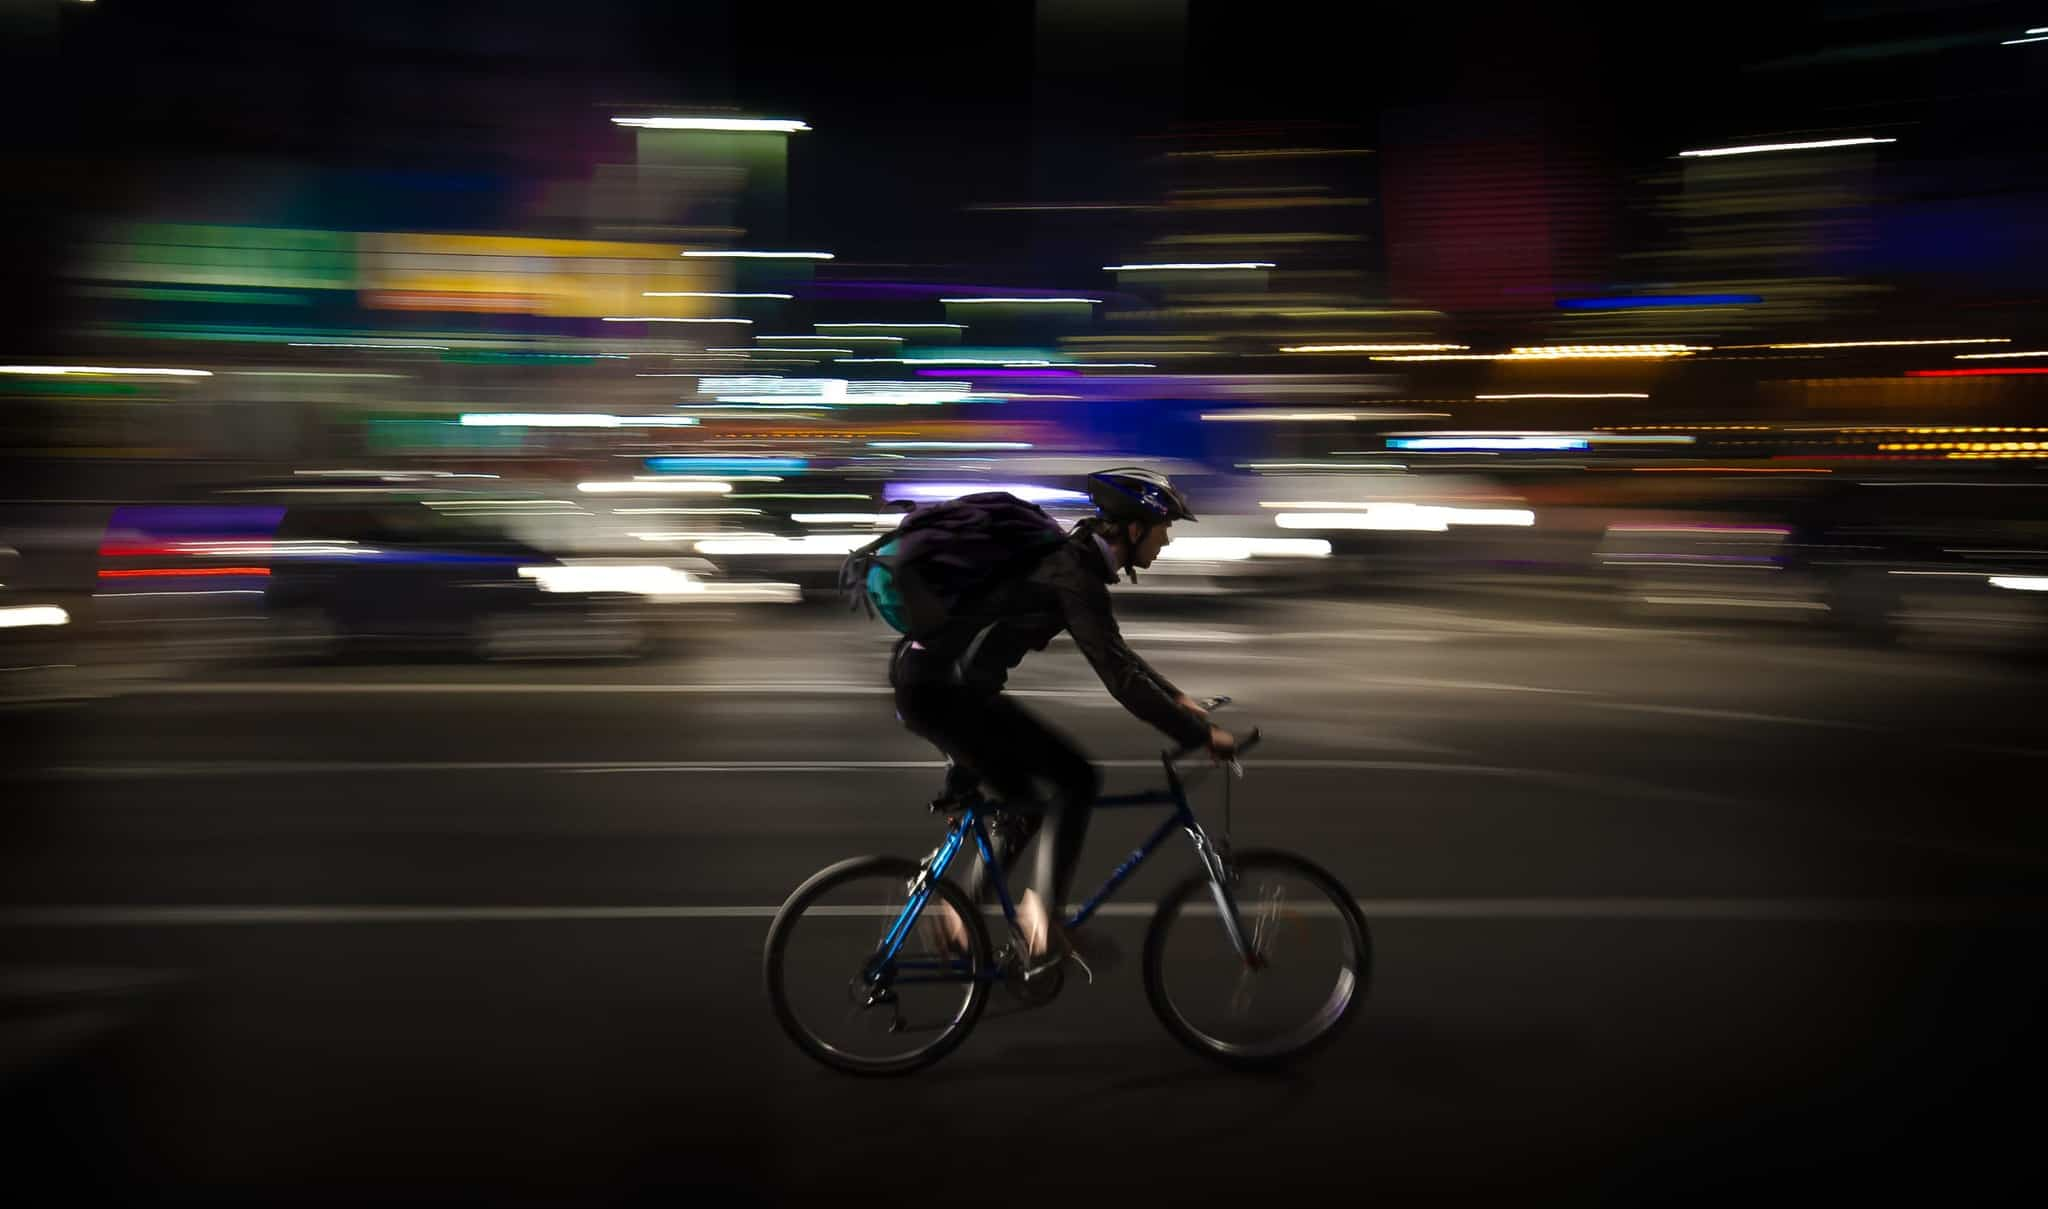 cyclist riding a bike with a blurred dark background